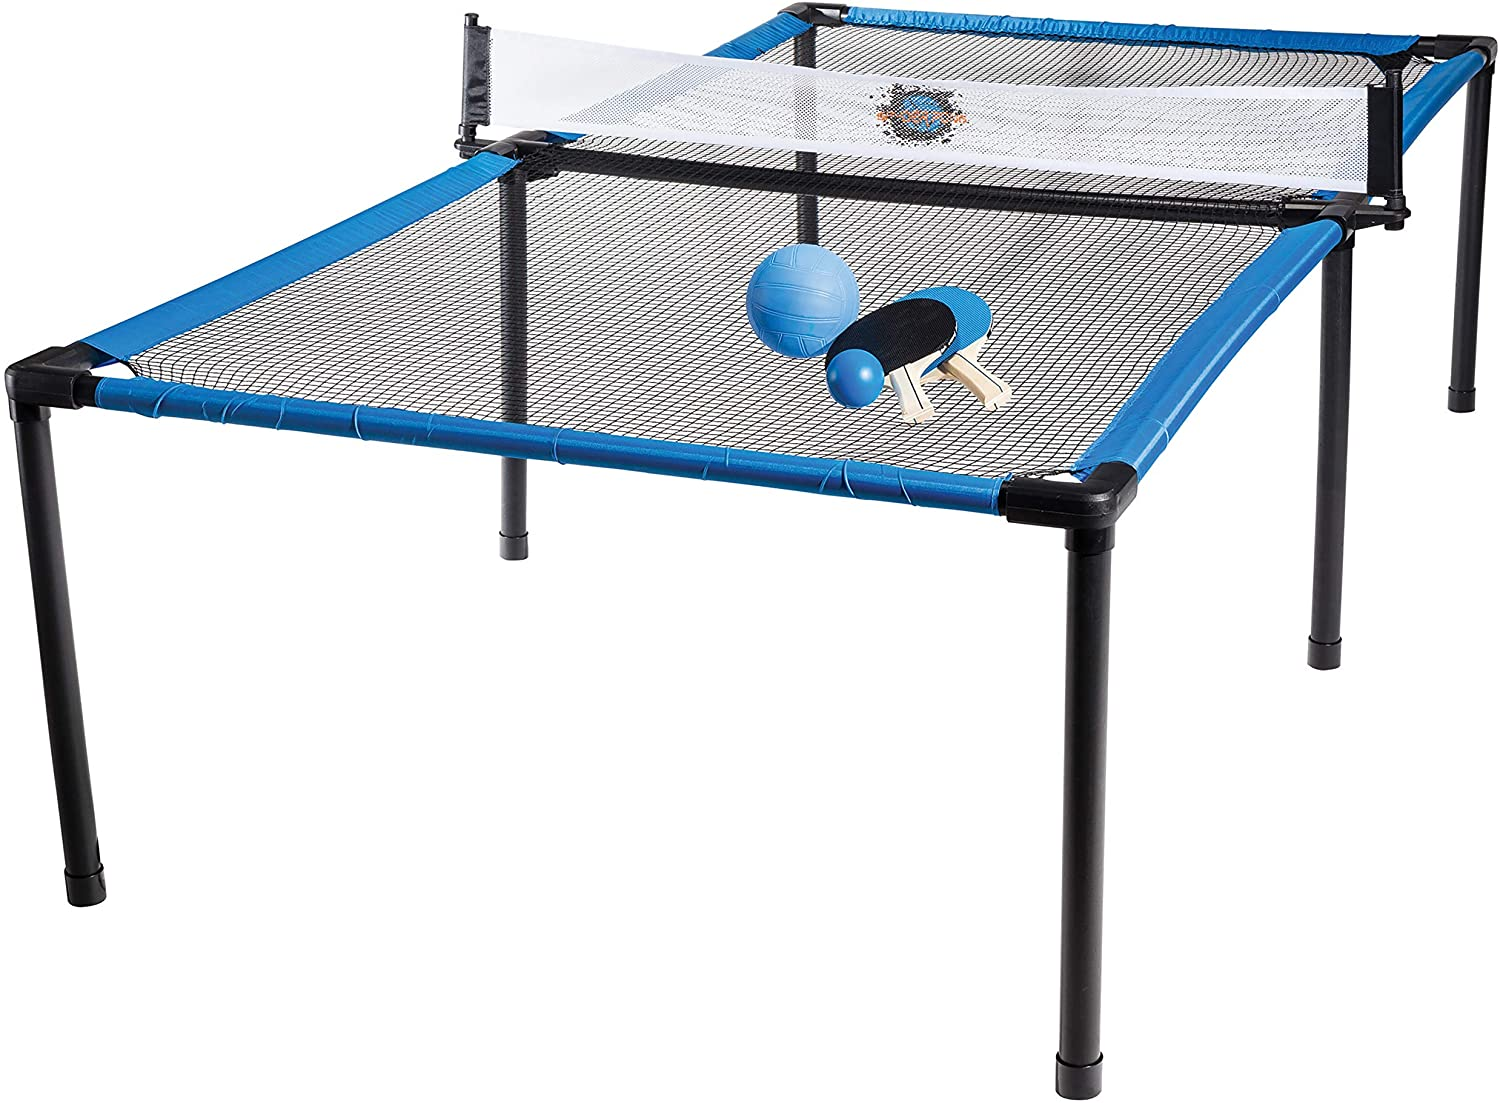 Portable Franklin Sports Spyder Pong Tennis camping game for adults